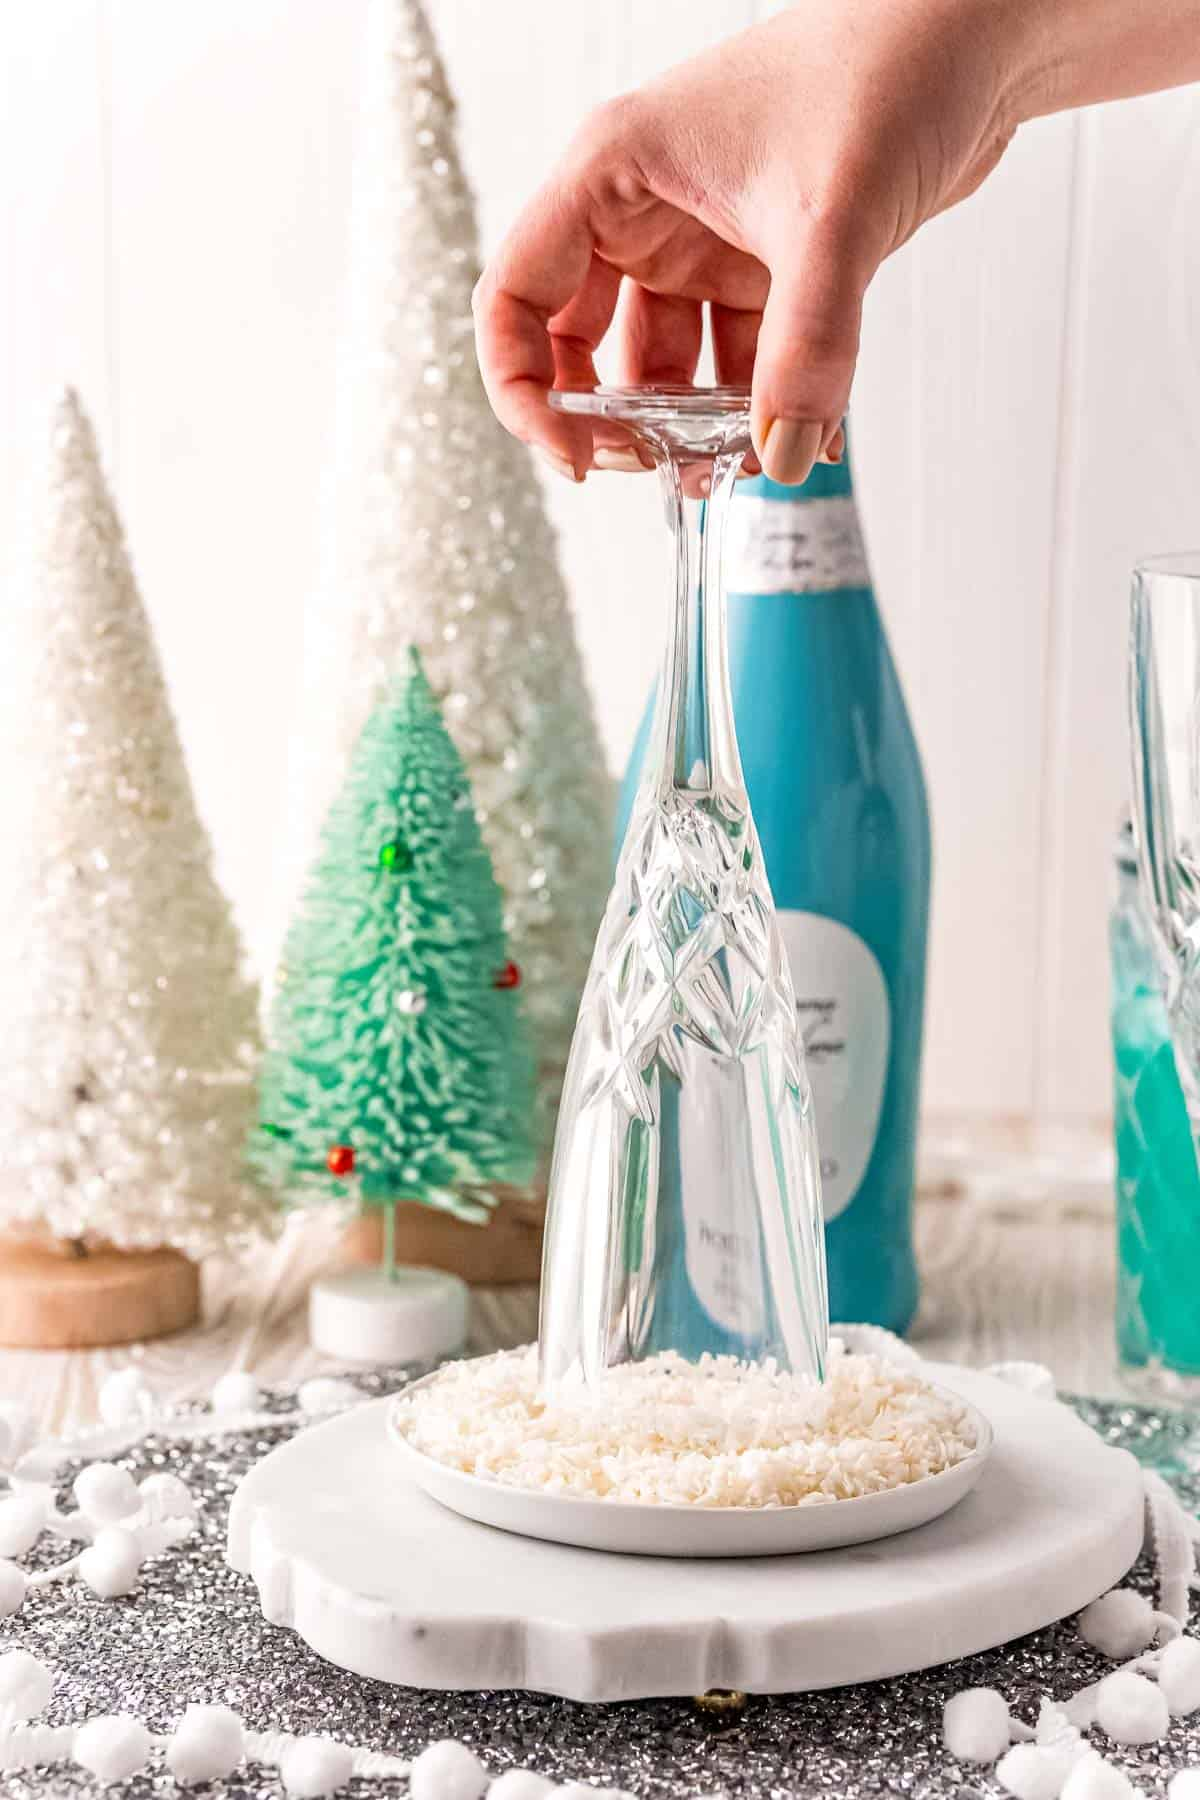 Champagne flute being rimmed with coconut flakes.